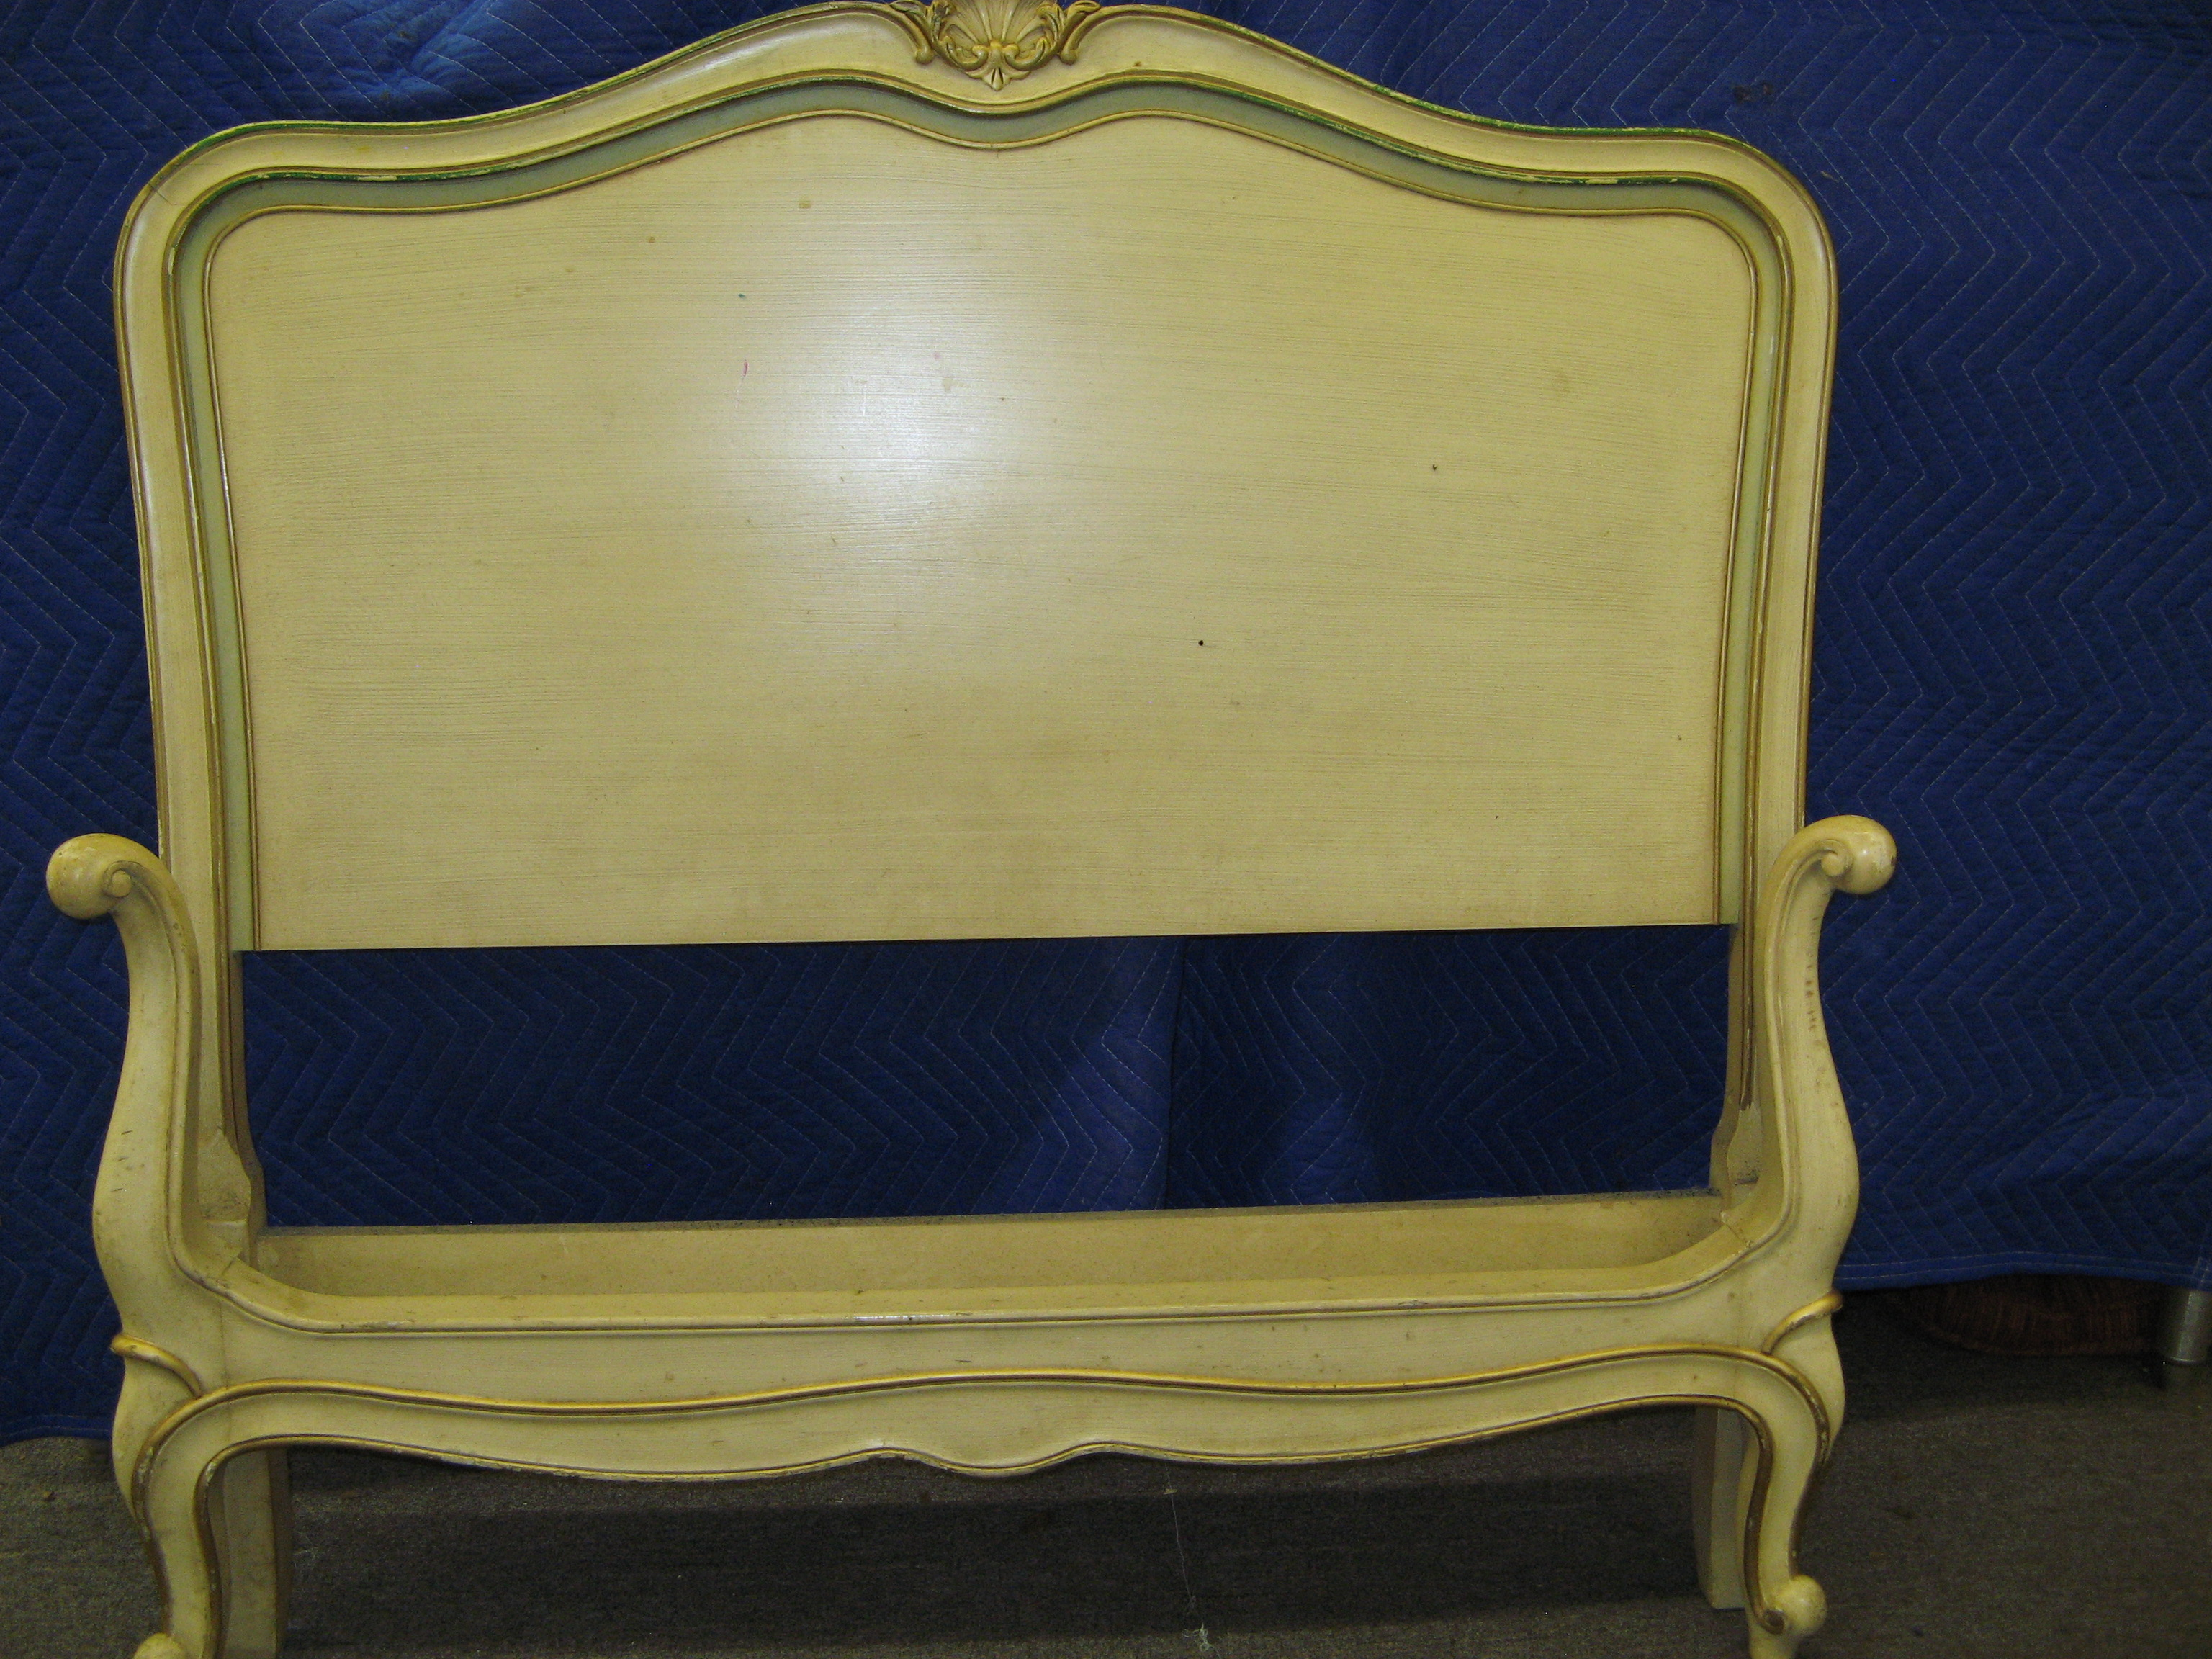 Drexel French Provincial Twin Size Bed, Cream (Headboard & Footboard Only)